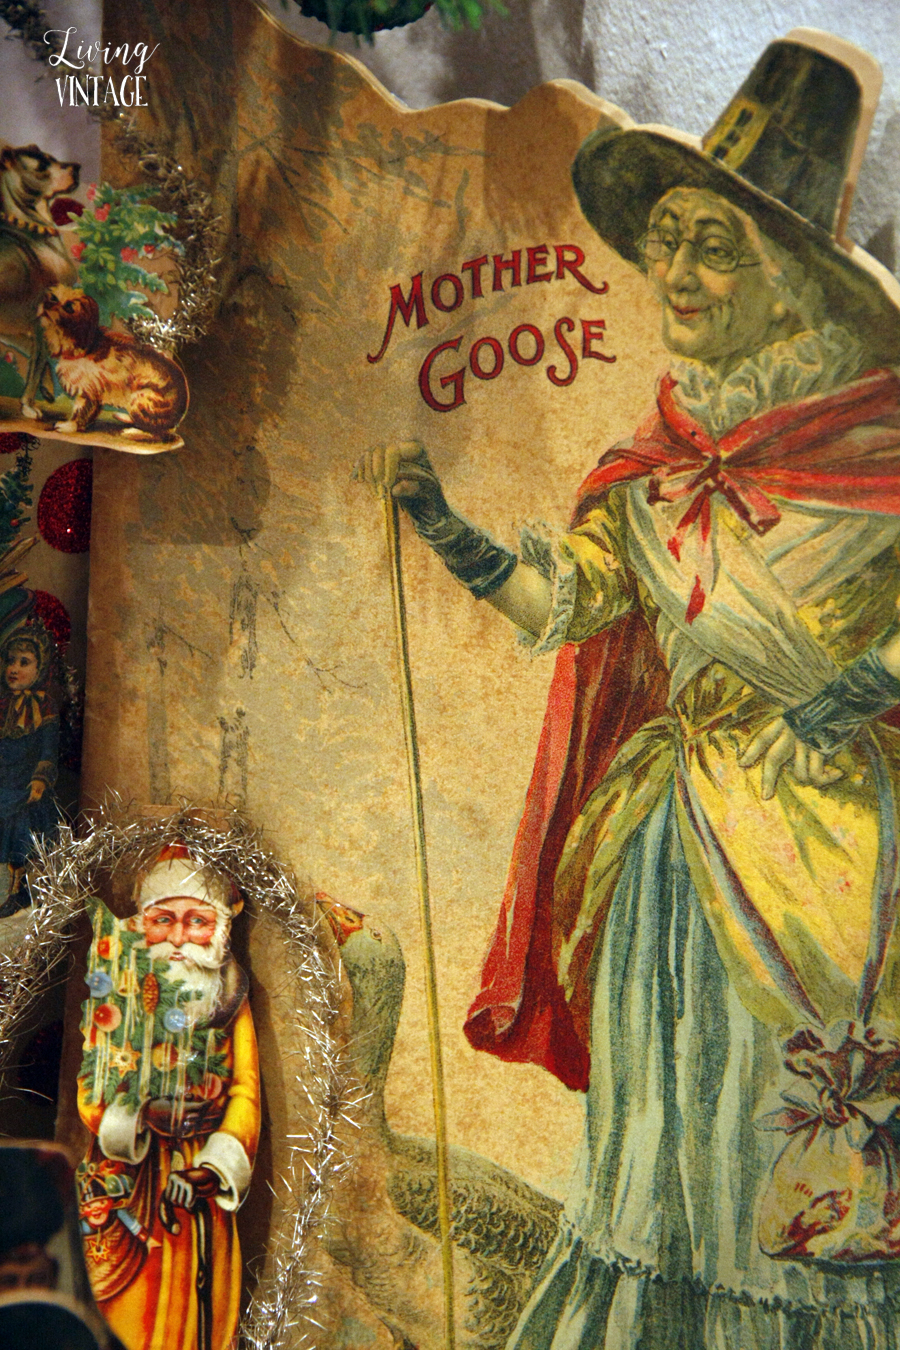 Mother Goose and other paper ephemera